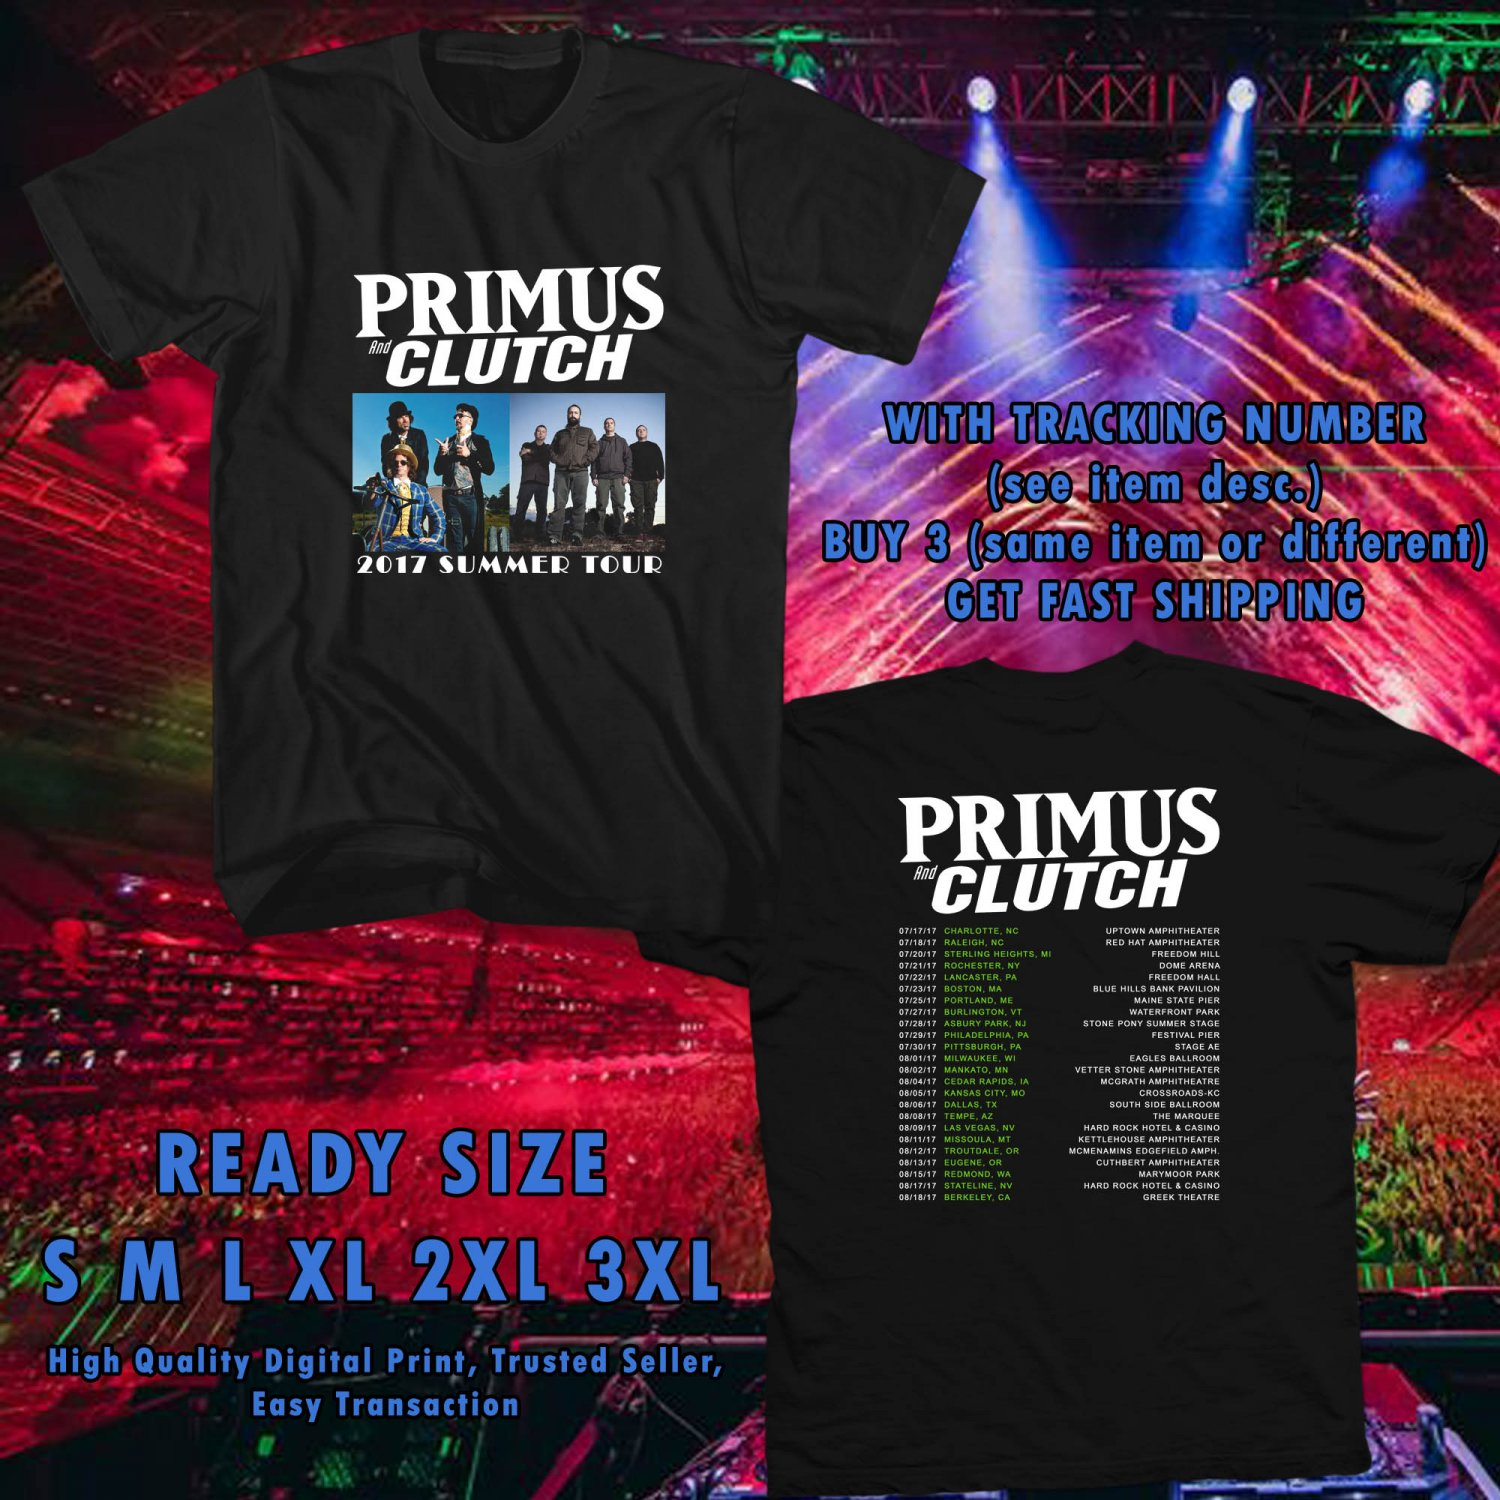 NEW AN EVENING WITH PRIMUS AND CLUTCH SUMMER TOUR 2017 black TEE W DATES DMTR